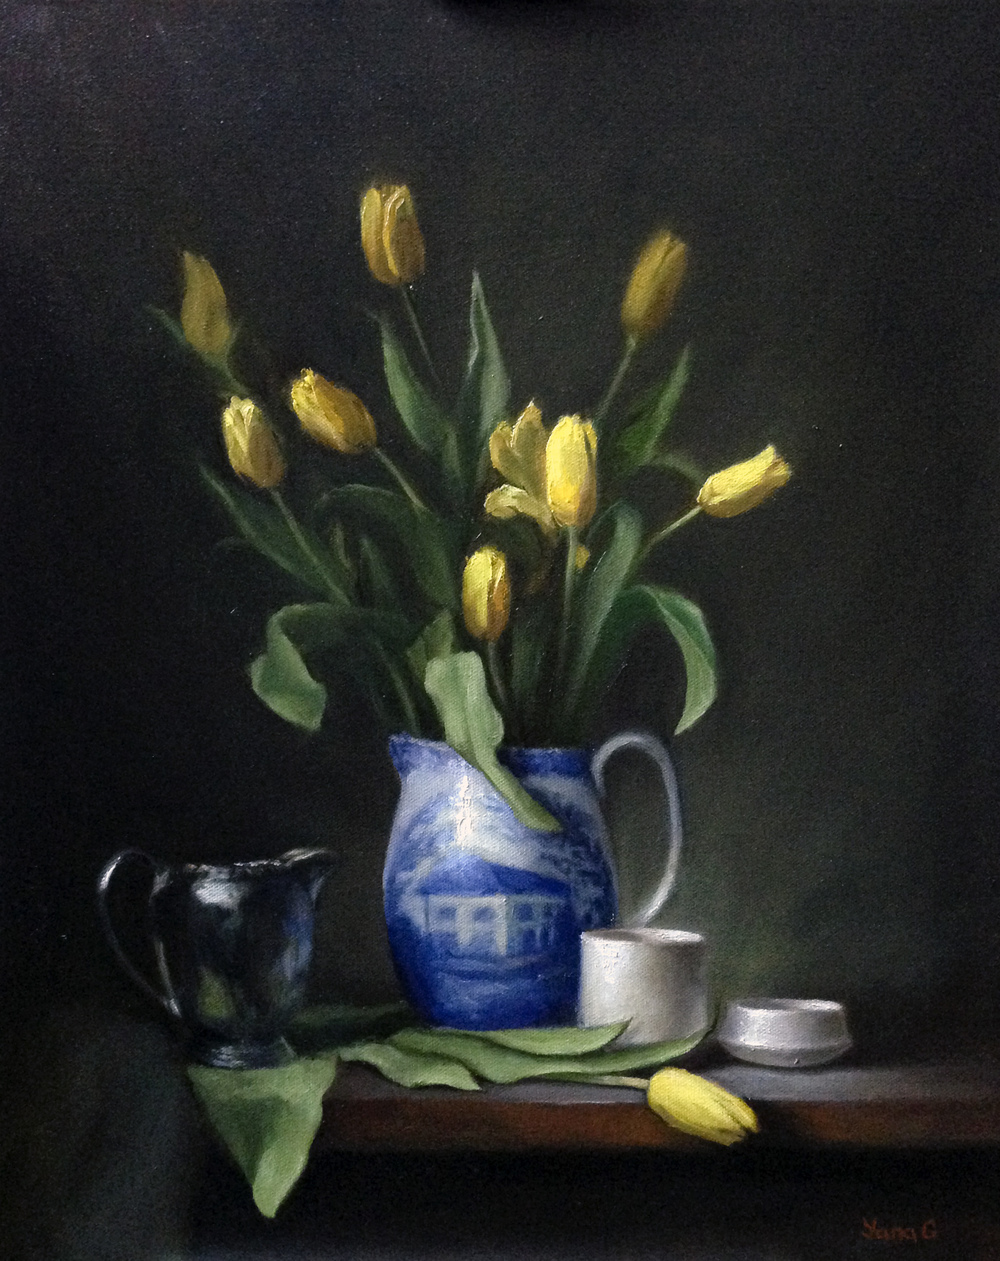 Yellow Tulips 16x20 Oil on canvas